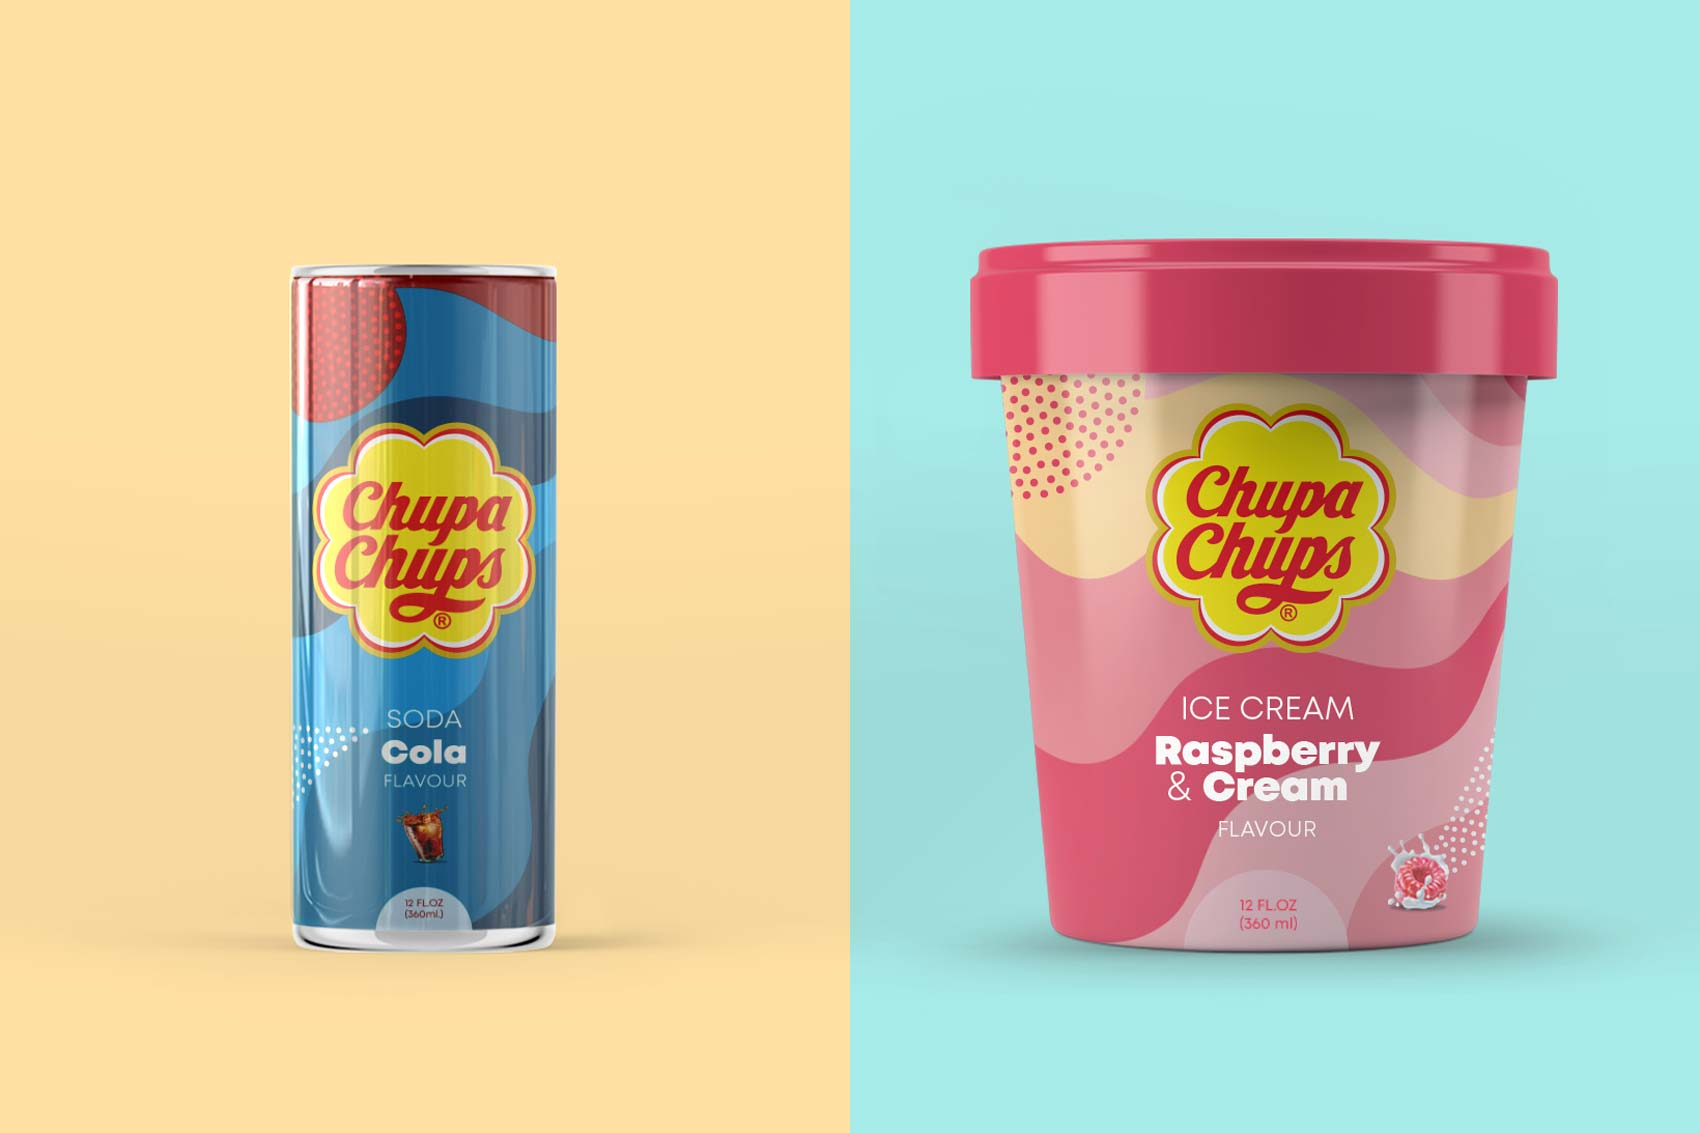 Chupa Chups packaging branding licensing brand architecture graphic design Vibranding